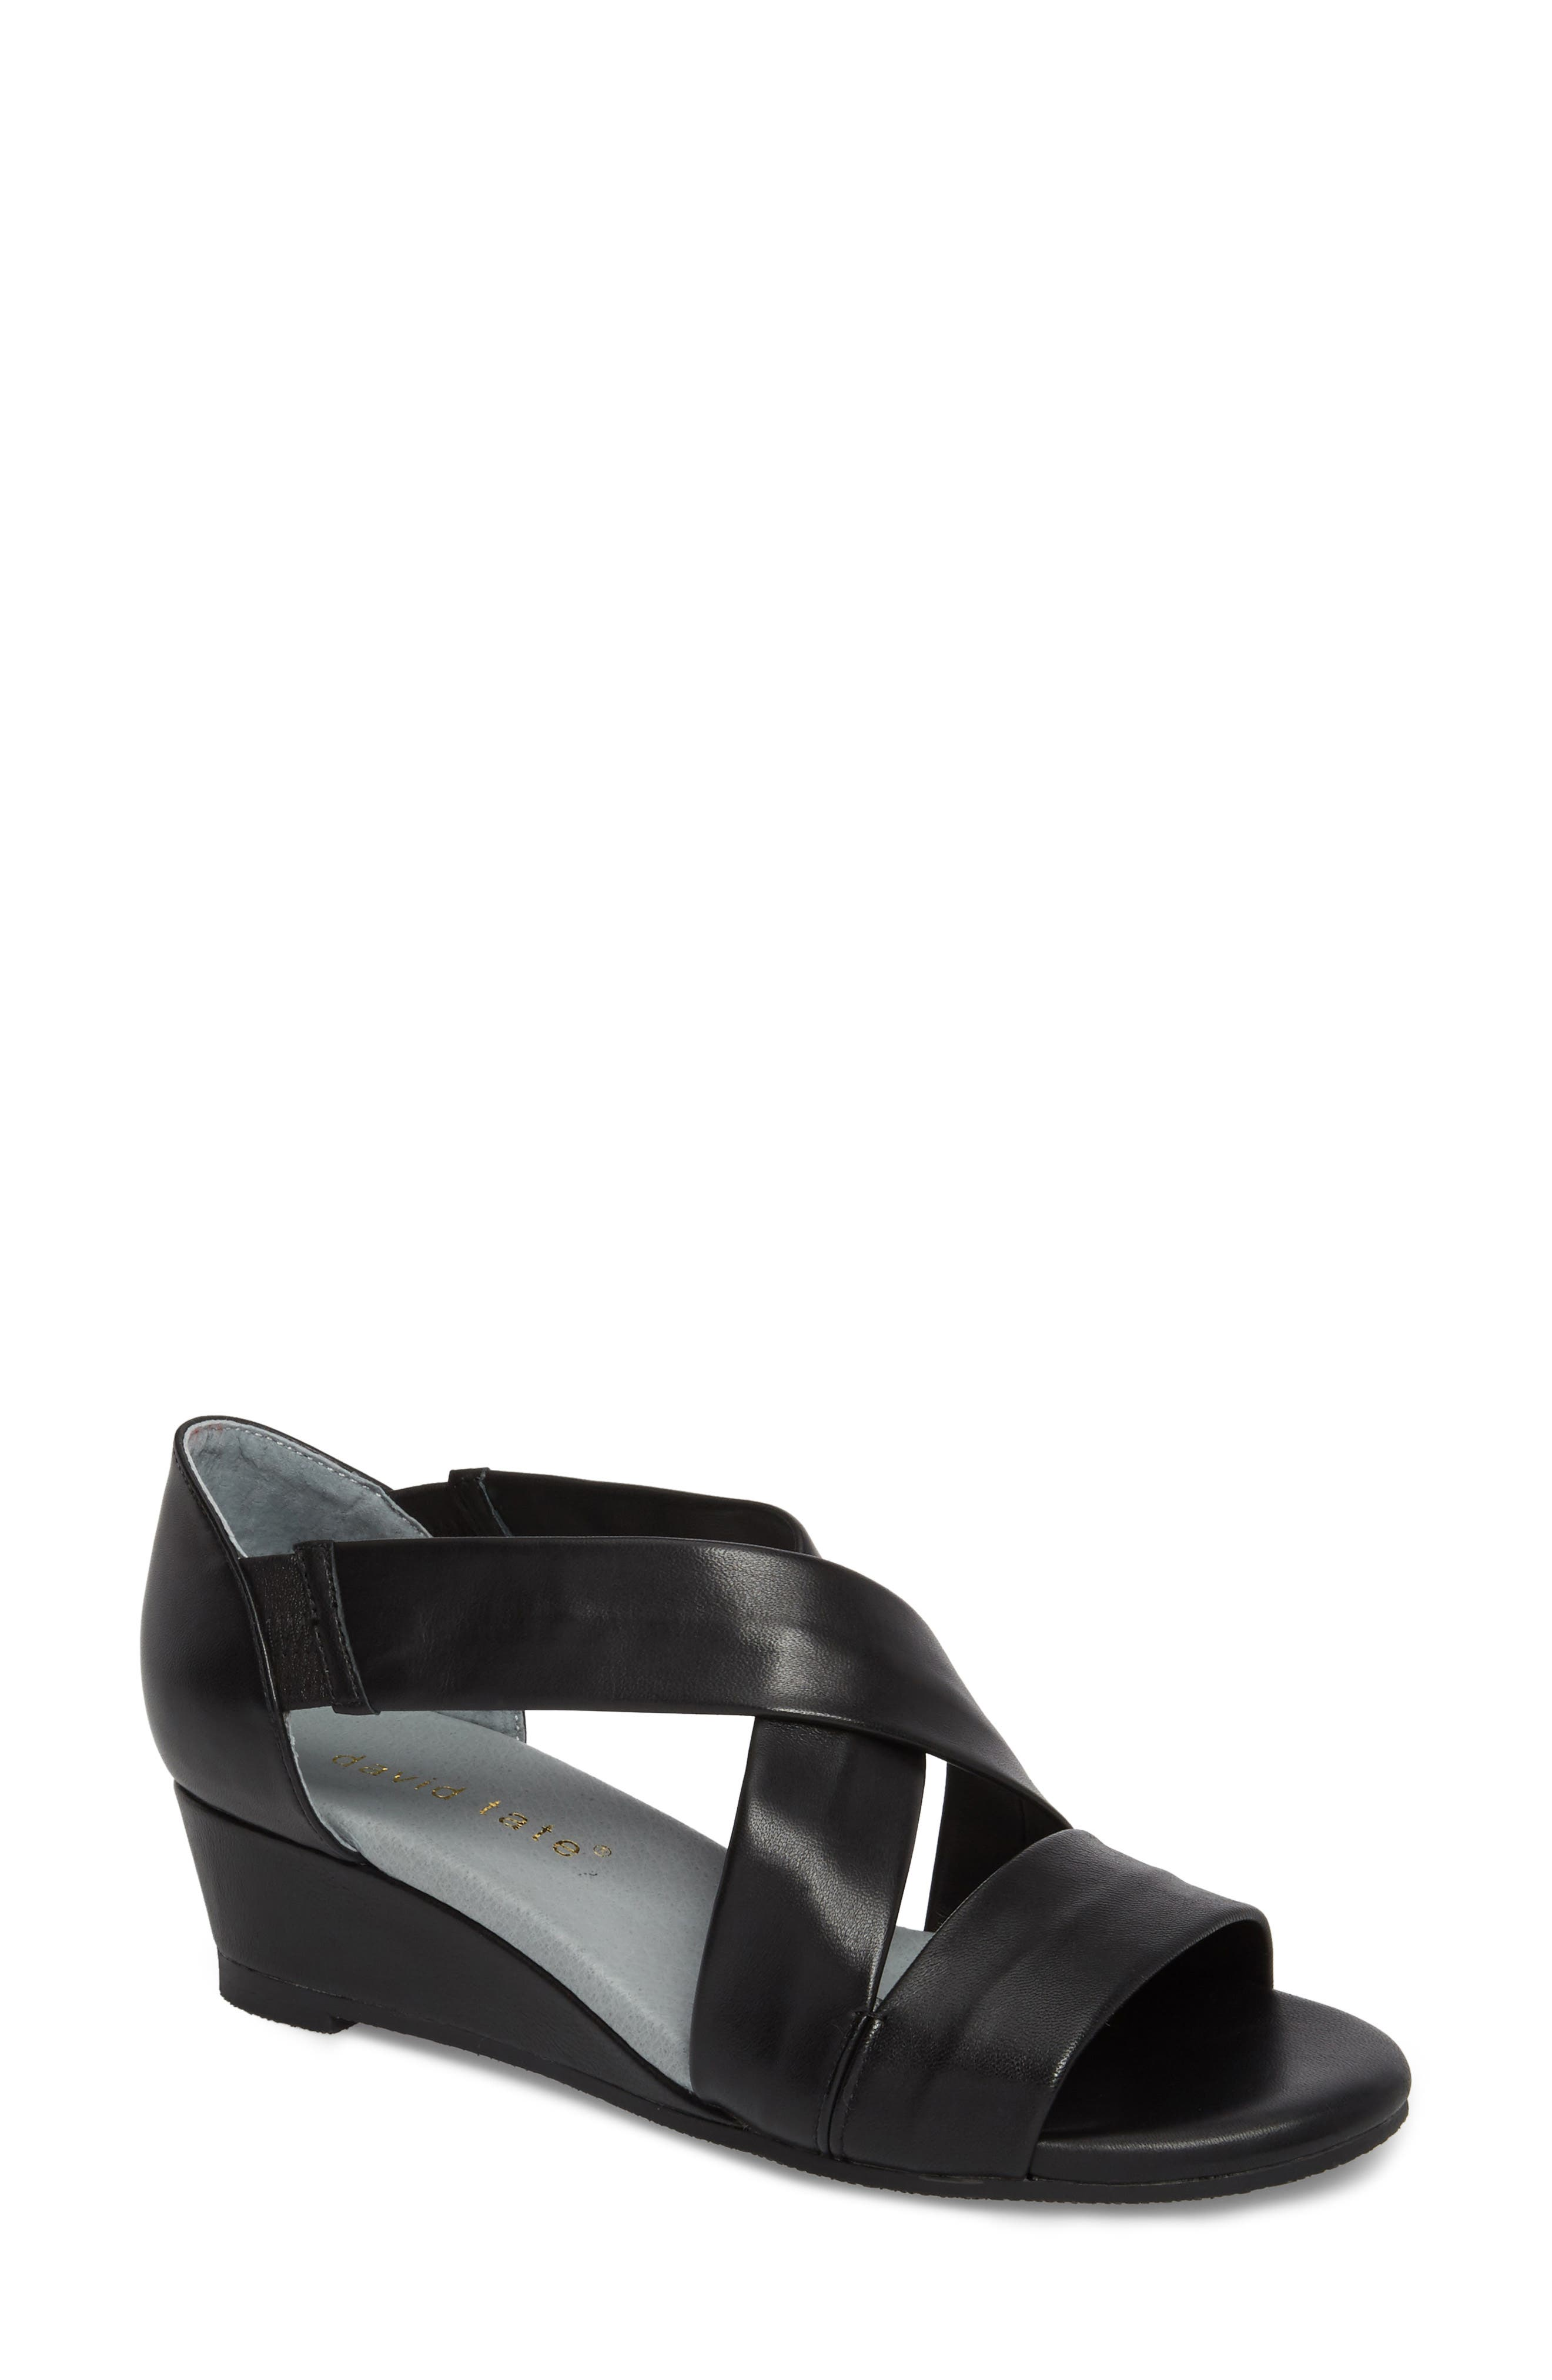 DAVID TATE, Swell Cross Strap Wedge Sandal, Main thumbnail 1, color, BLACK LEATHER